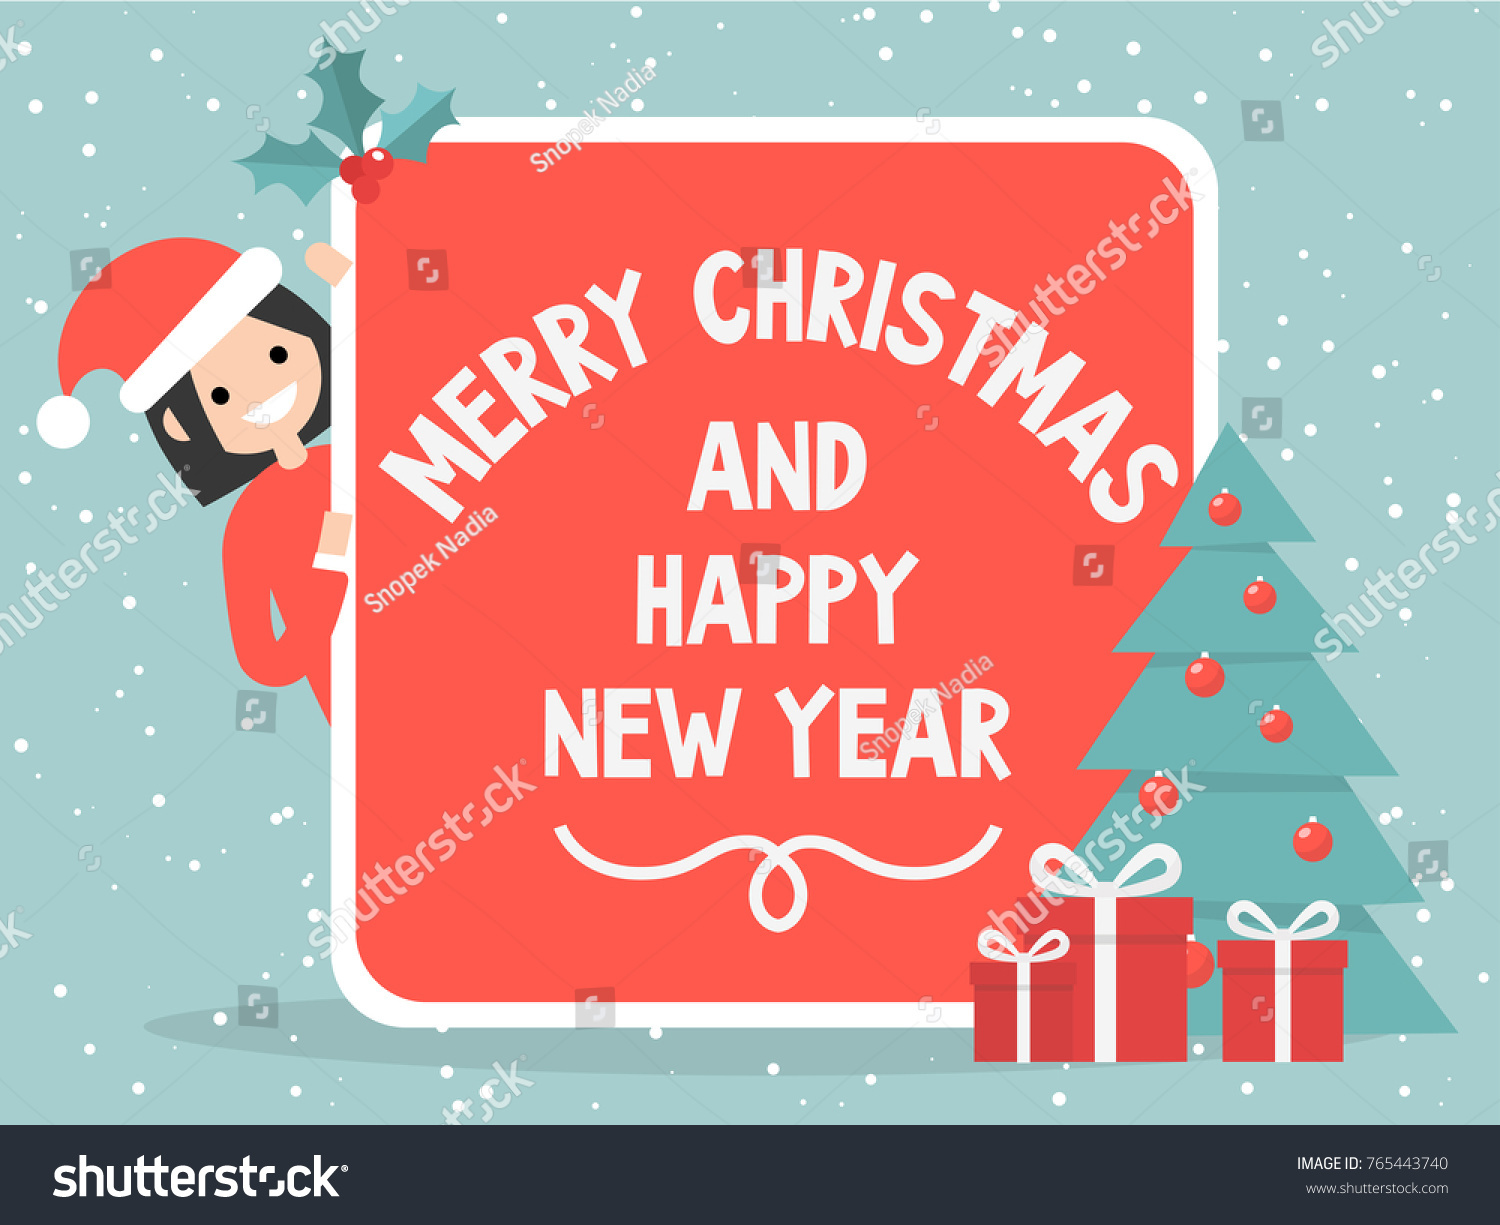 Merry Christmas Happy New Year Vintage Stock Vector ...